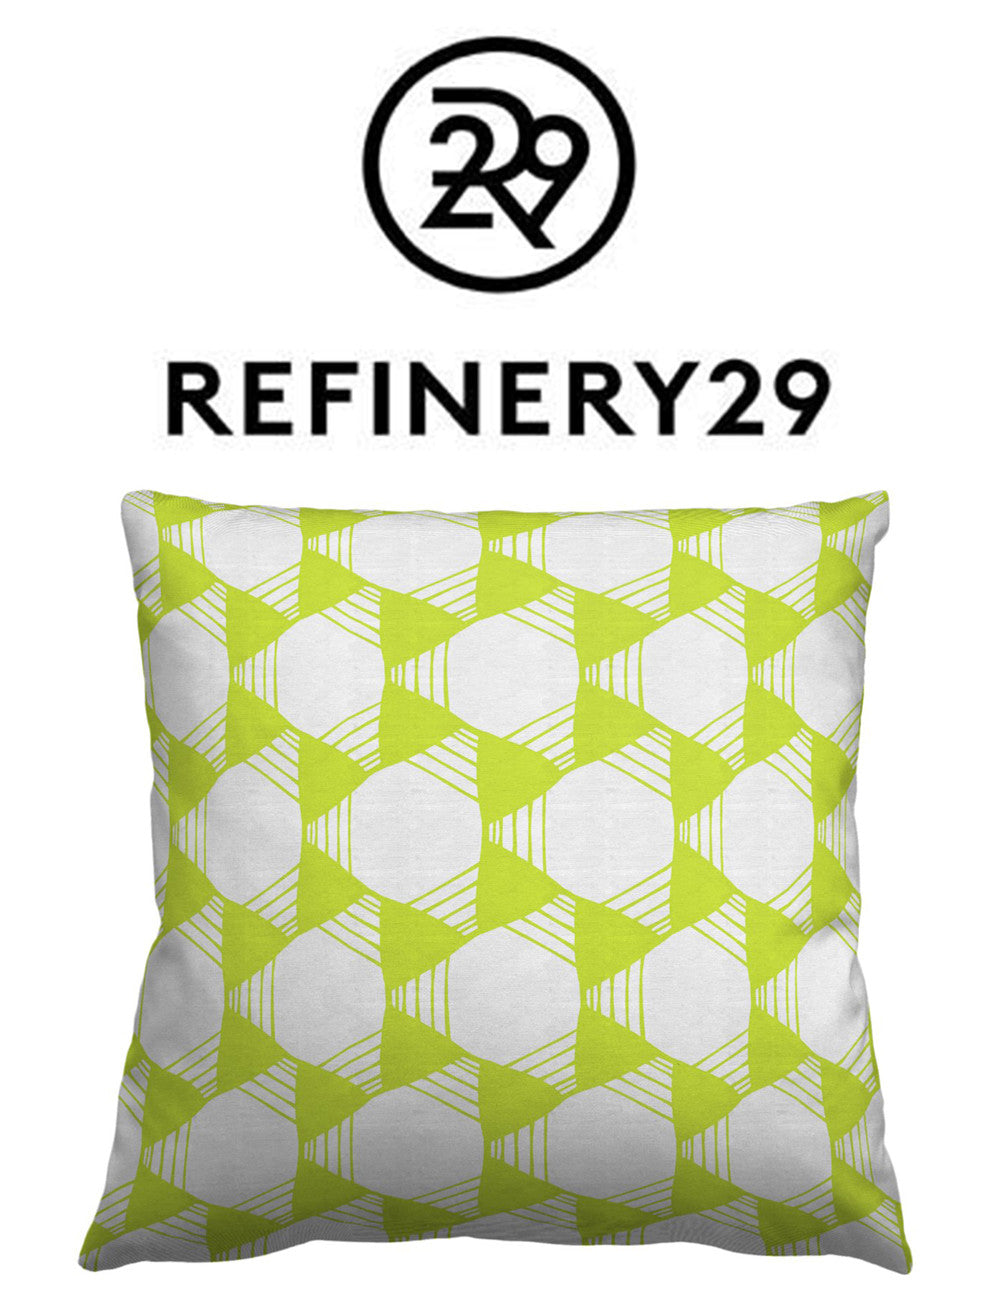 Fresh, geometric, colorful pillows designed by Sarah & Ruby for Guildery